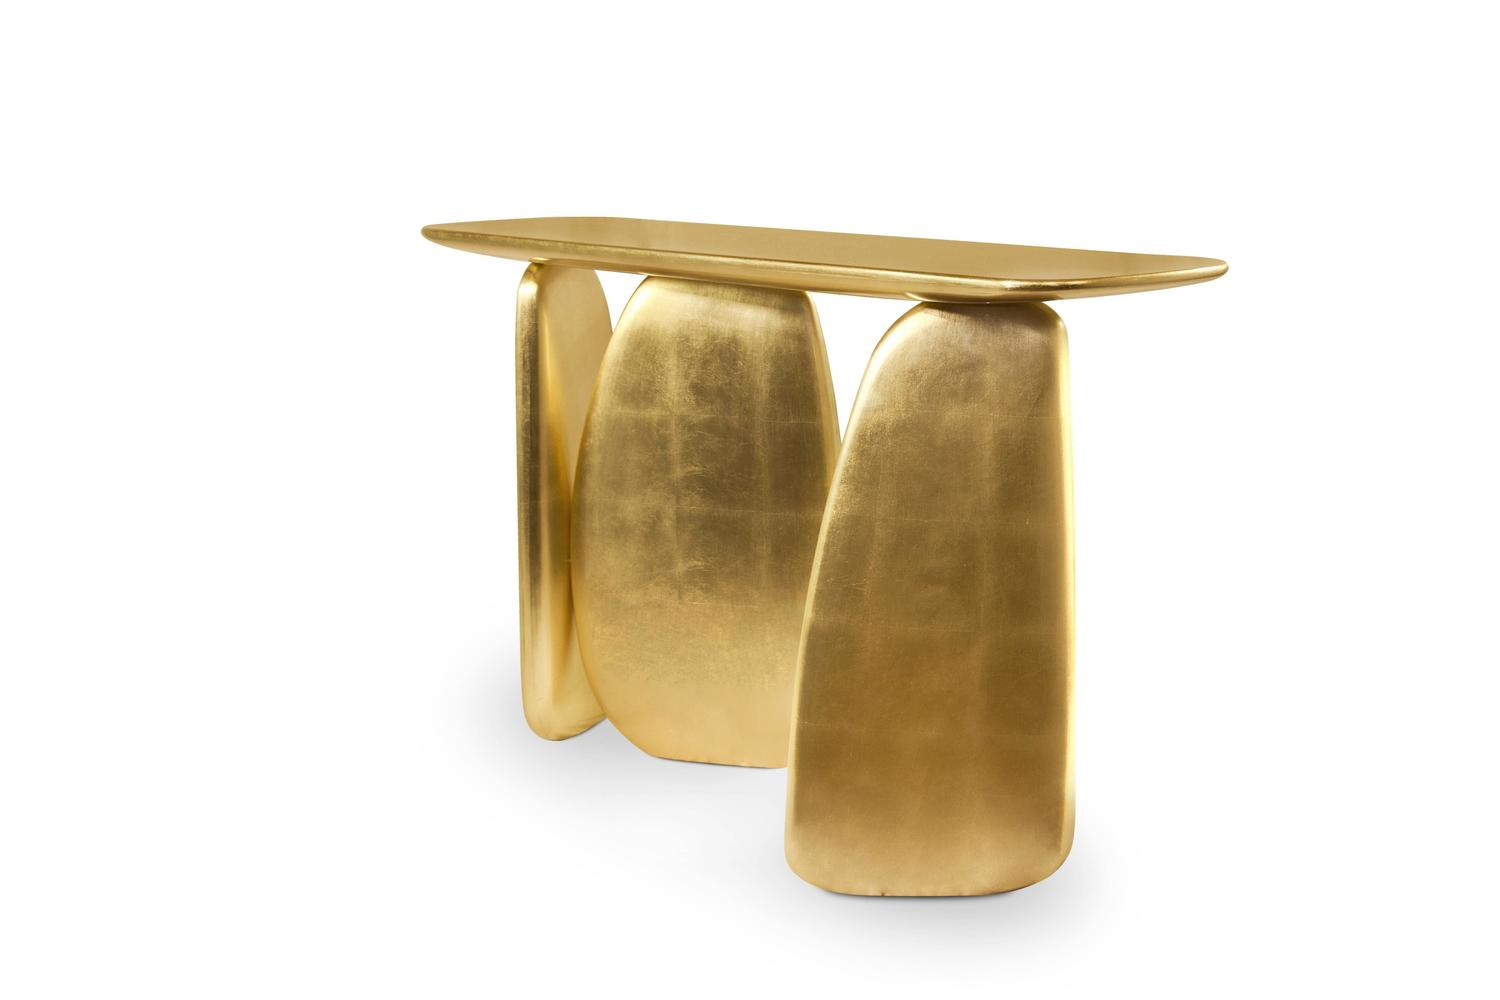 Ardara Gold Leaf Organic Modern Console By Brabbu From Europe For Sale At 1stdibs